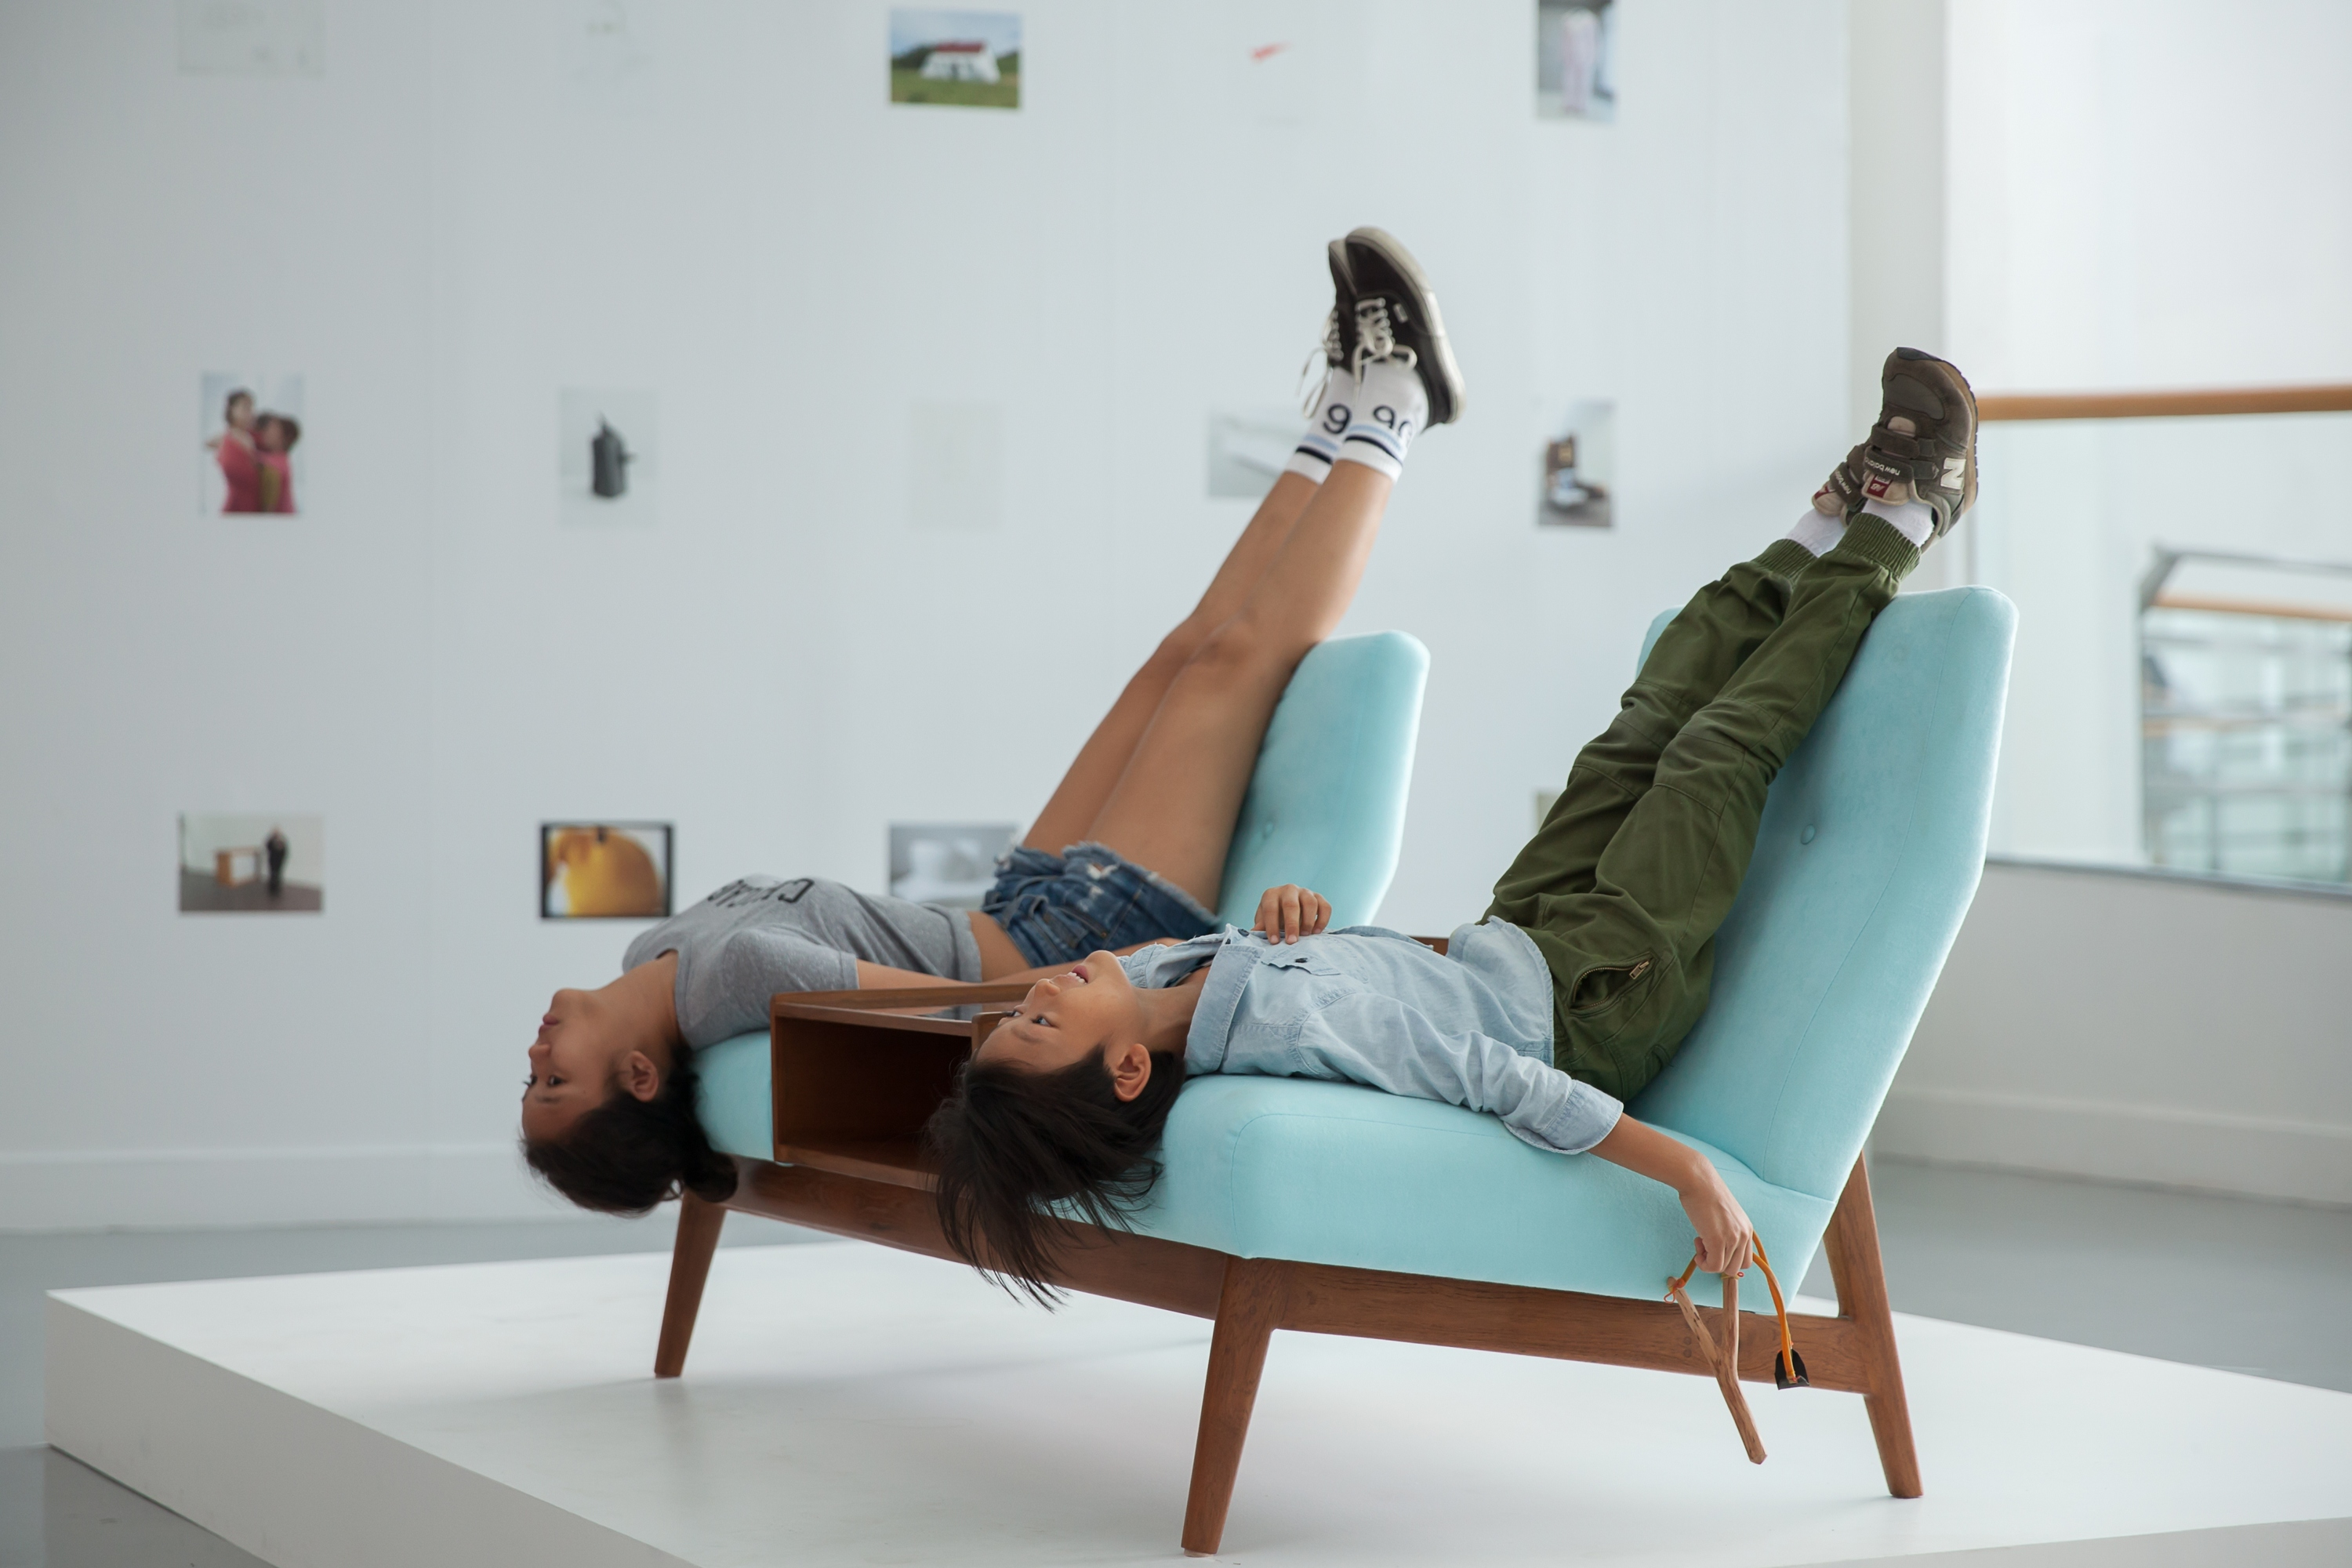 Erwin Wurm: The Philosophy of Instructions